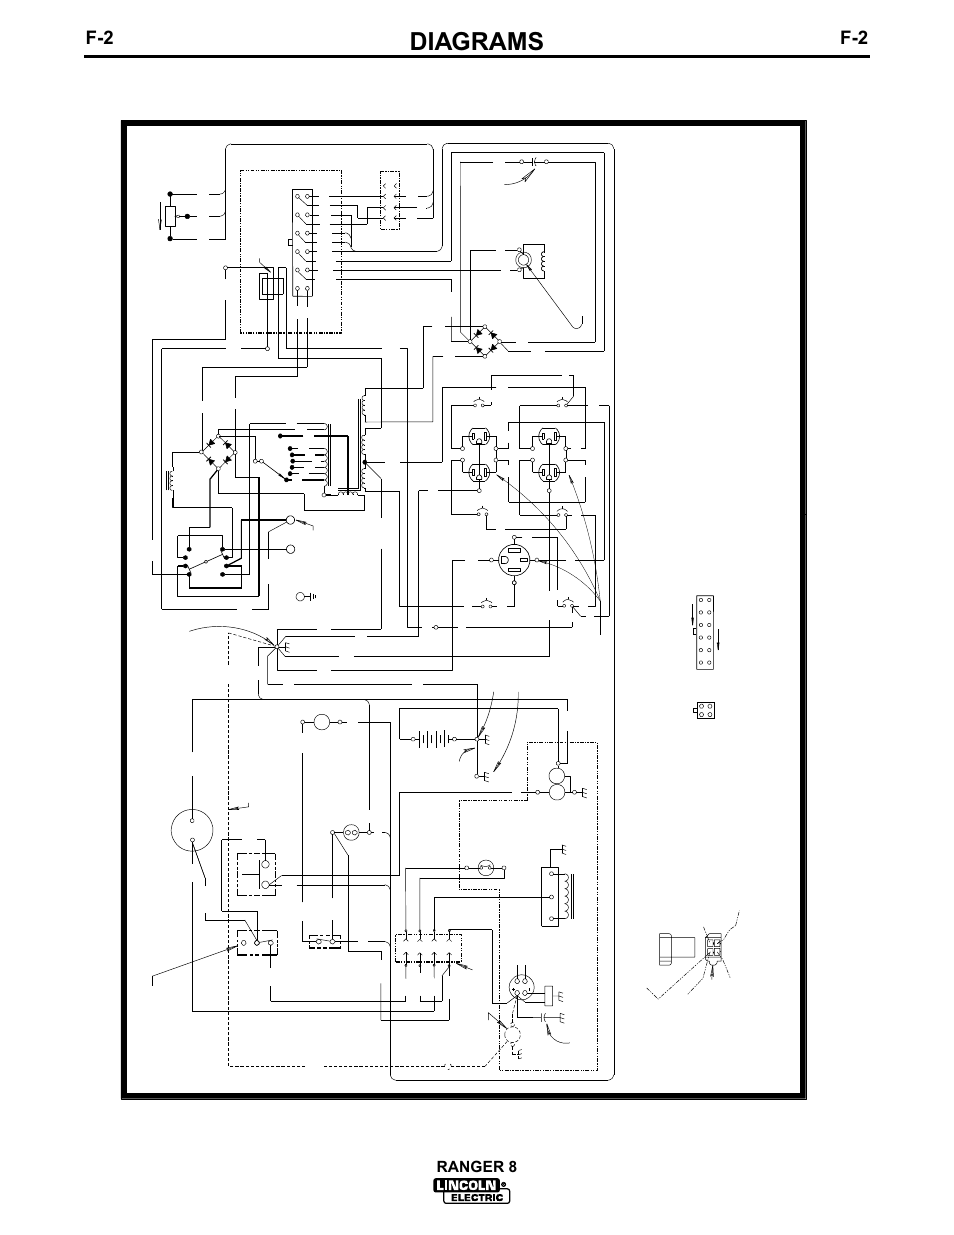 lincoln ranger 8 wiring diagram